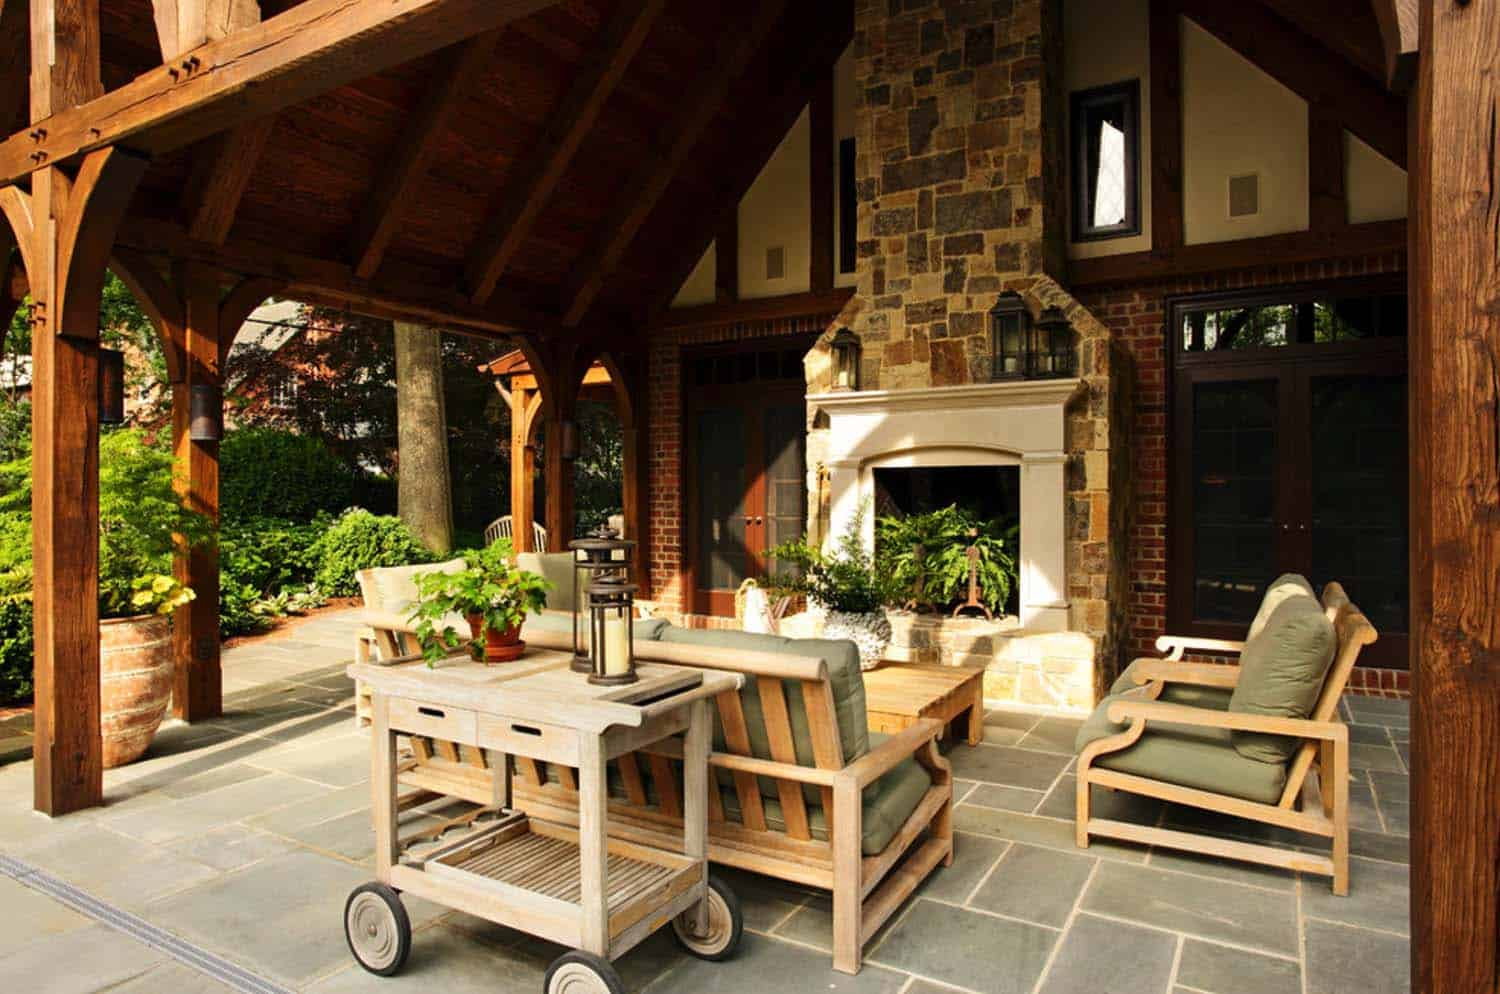 44 Traditional outdoor patio designs to capture your ... on Small Outdoor Covered Patio Ideas id=55914